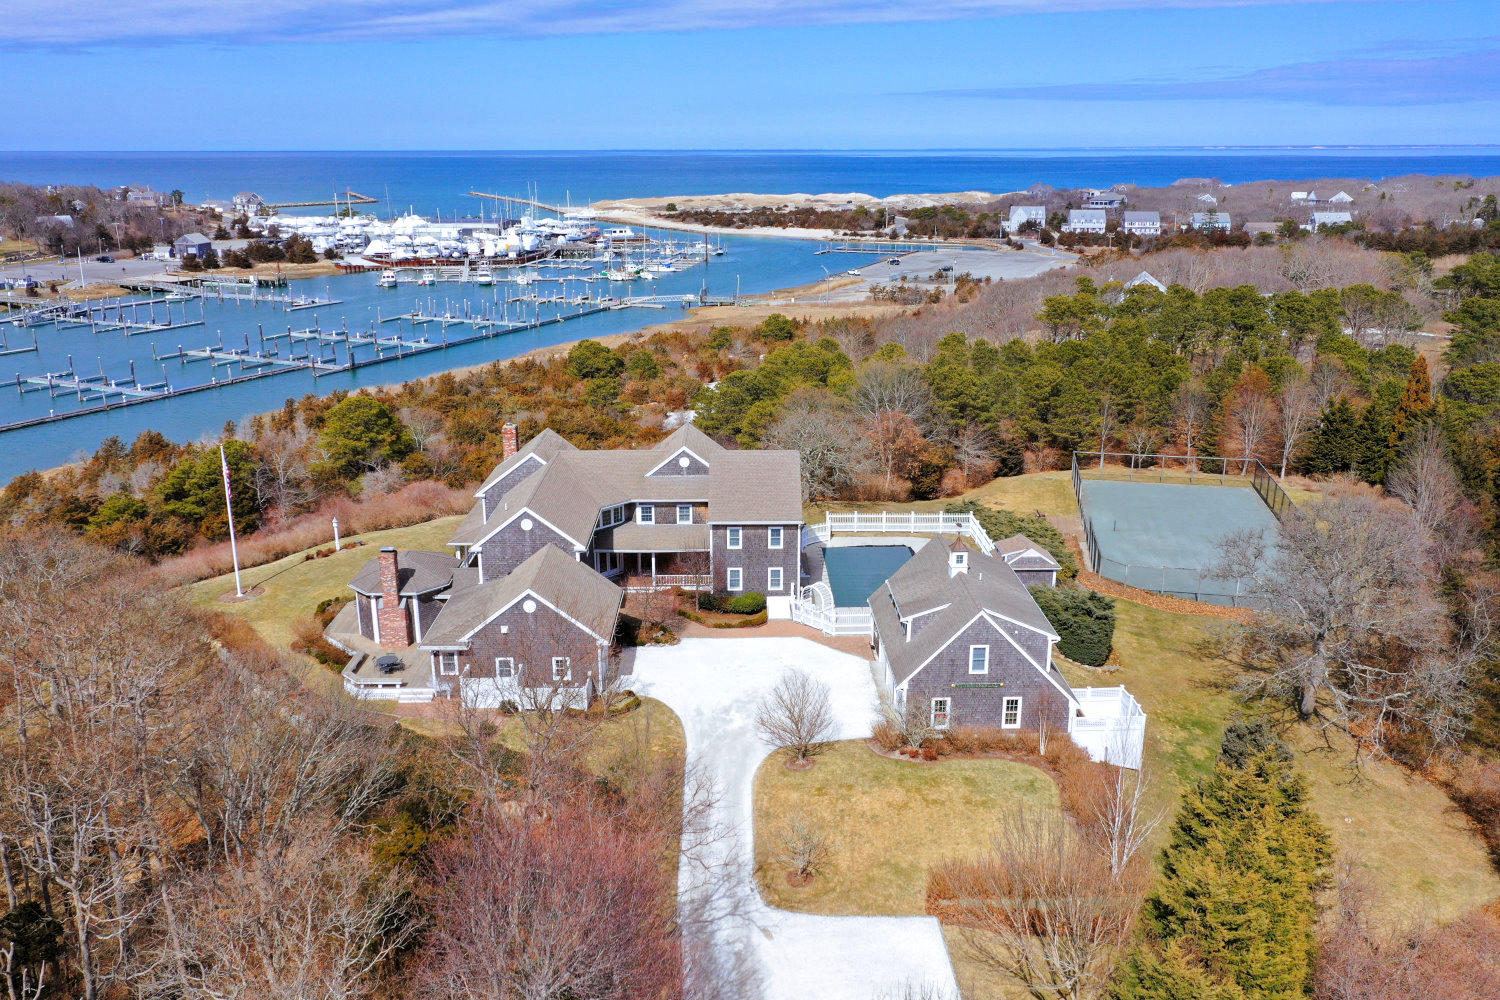 click to view more details 50 J H Sears Road, East Dennis, MA 02641